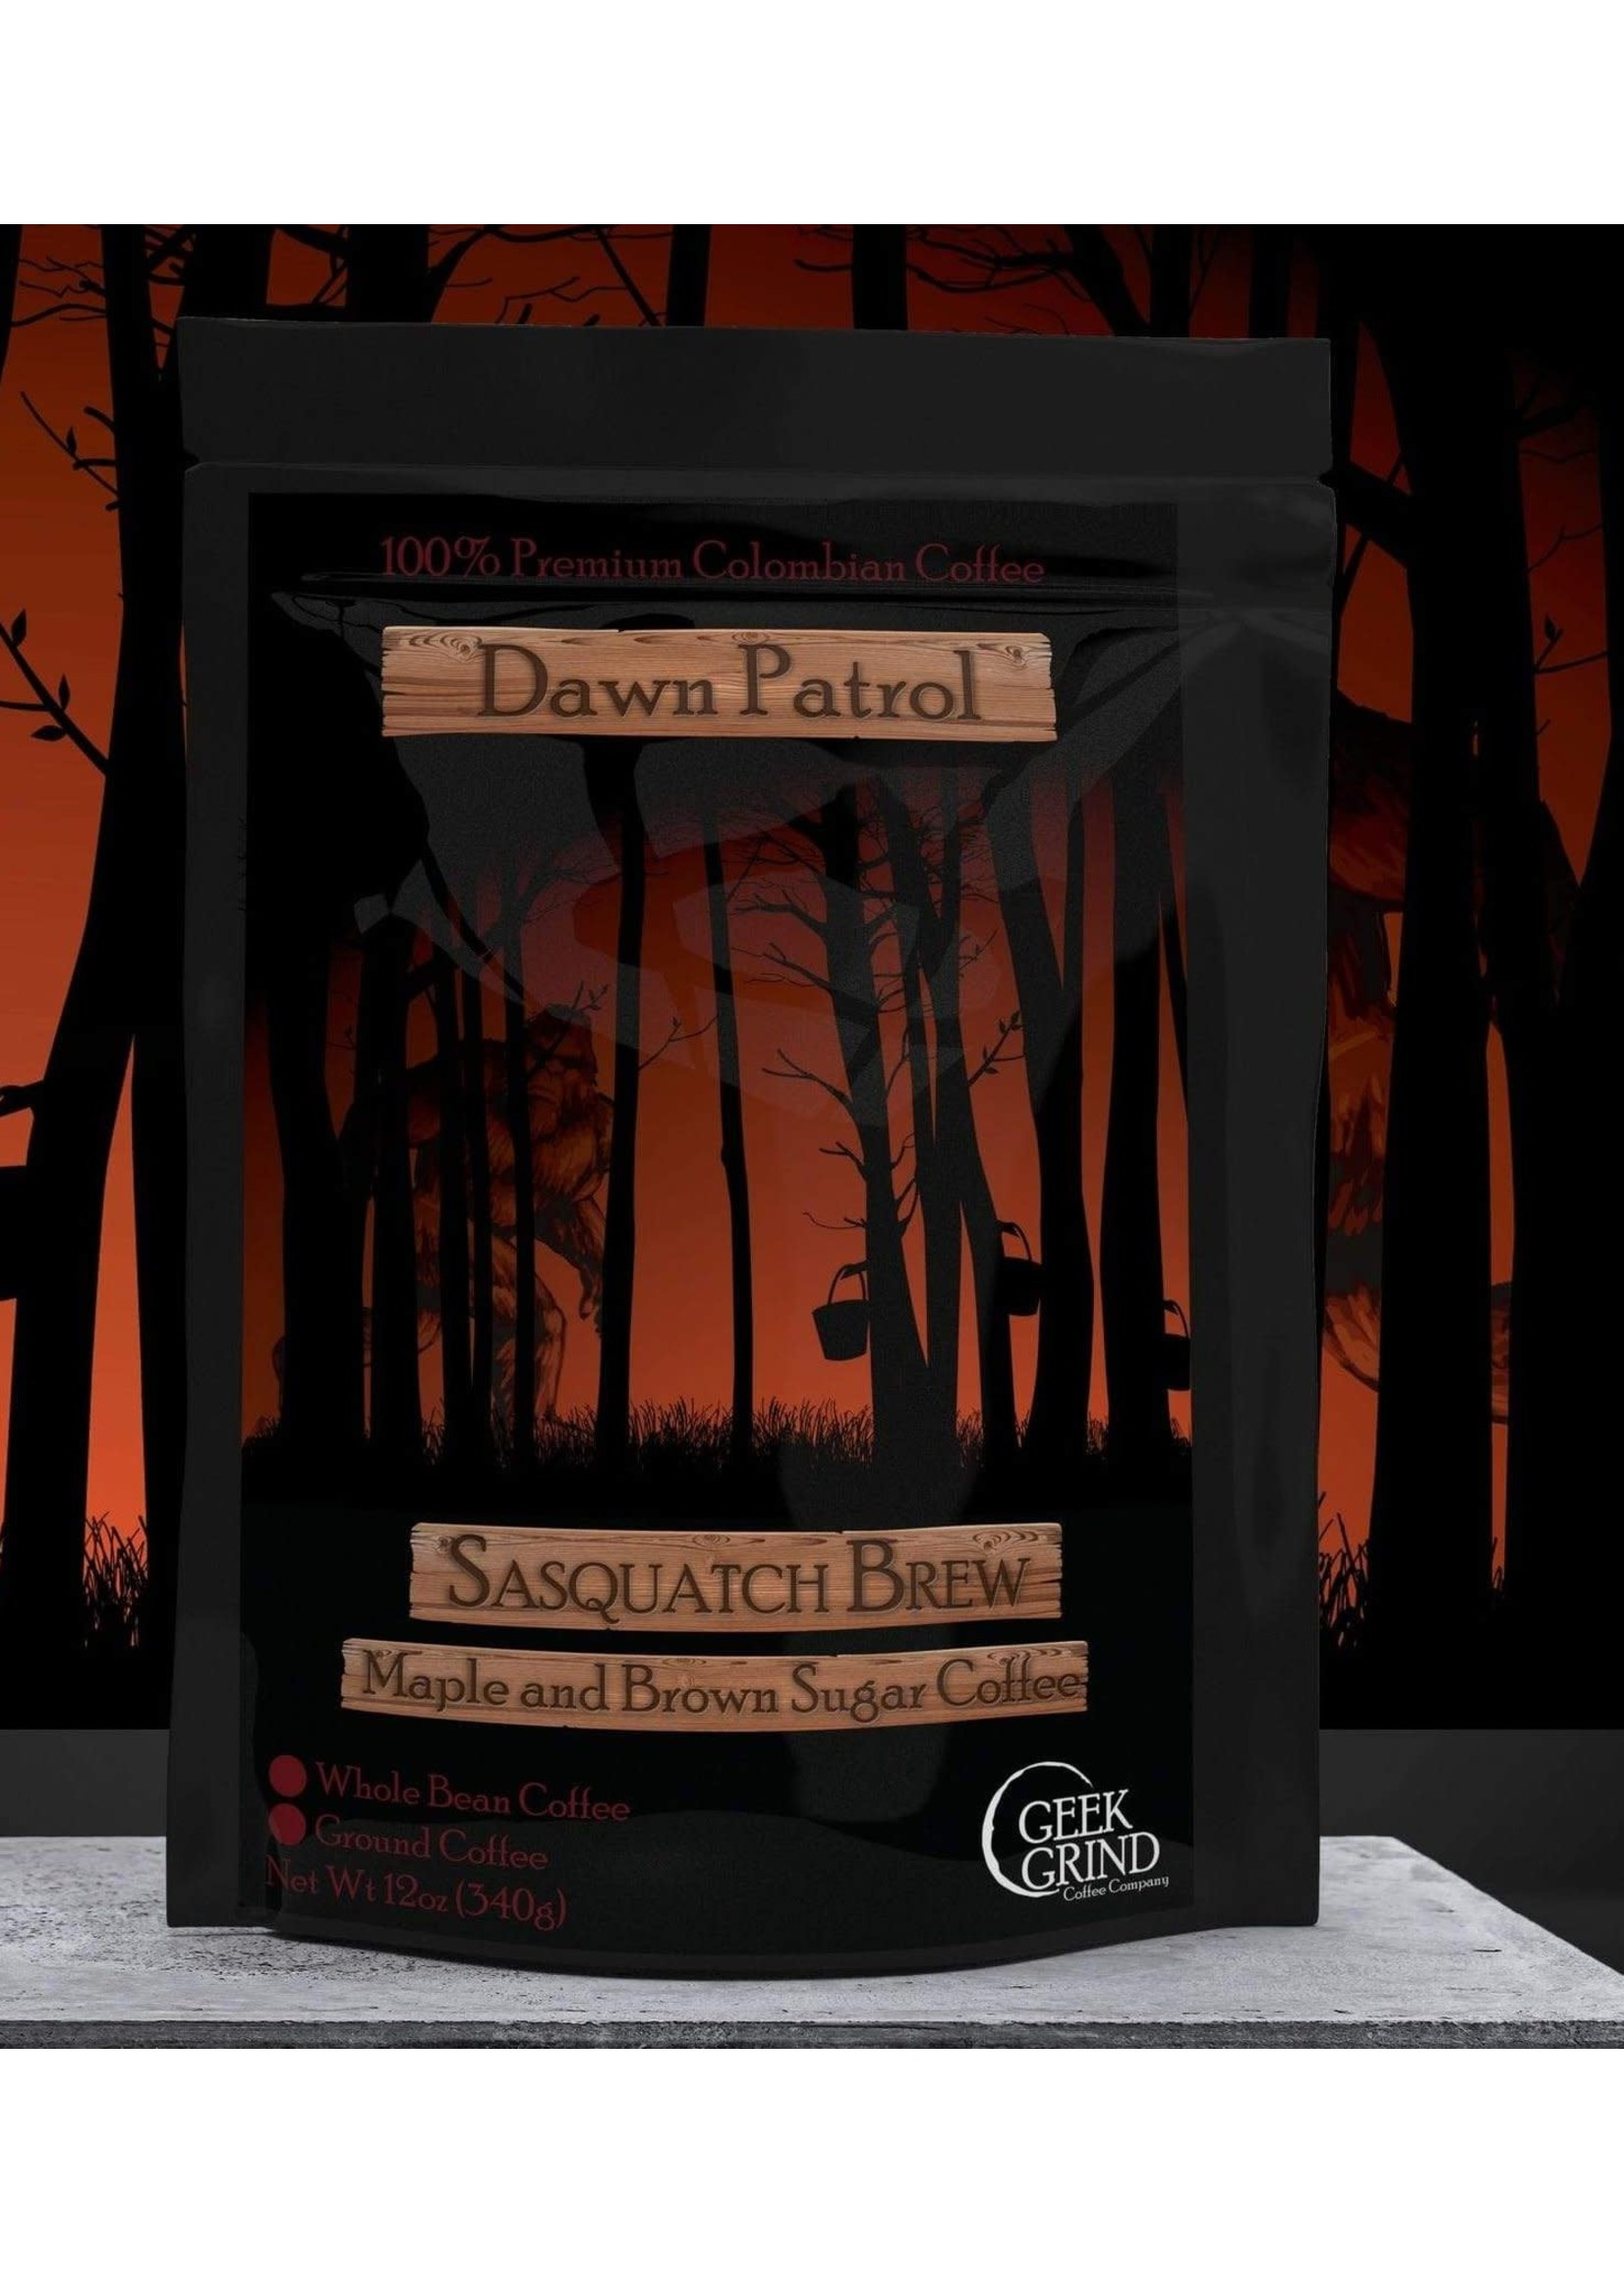 Geek Grind Dawn Patrol - Sasquatch Brew - Maple and Brown Sugar Coffee - 12 oz. / Whole bean